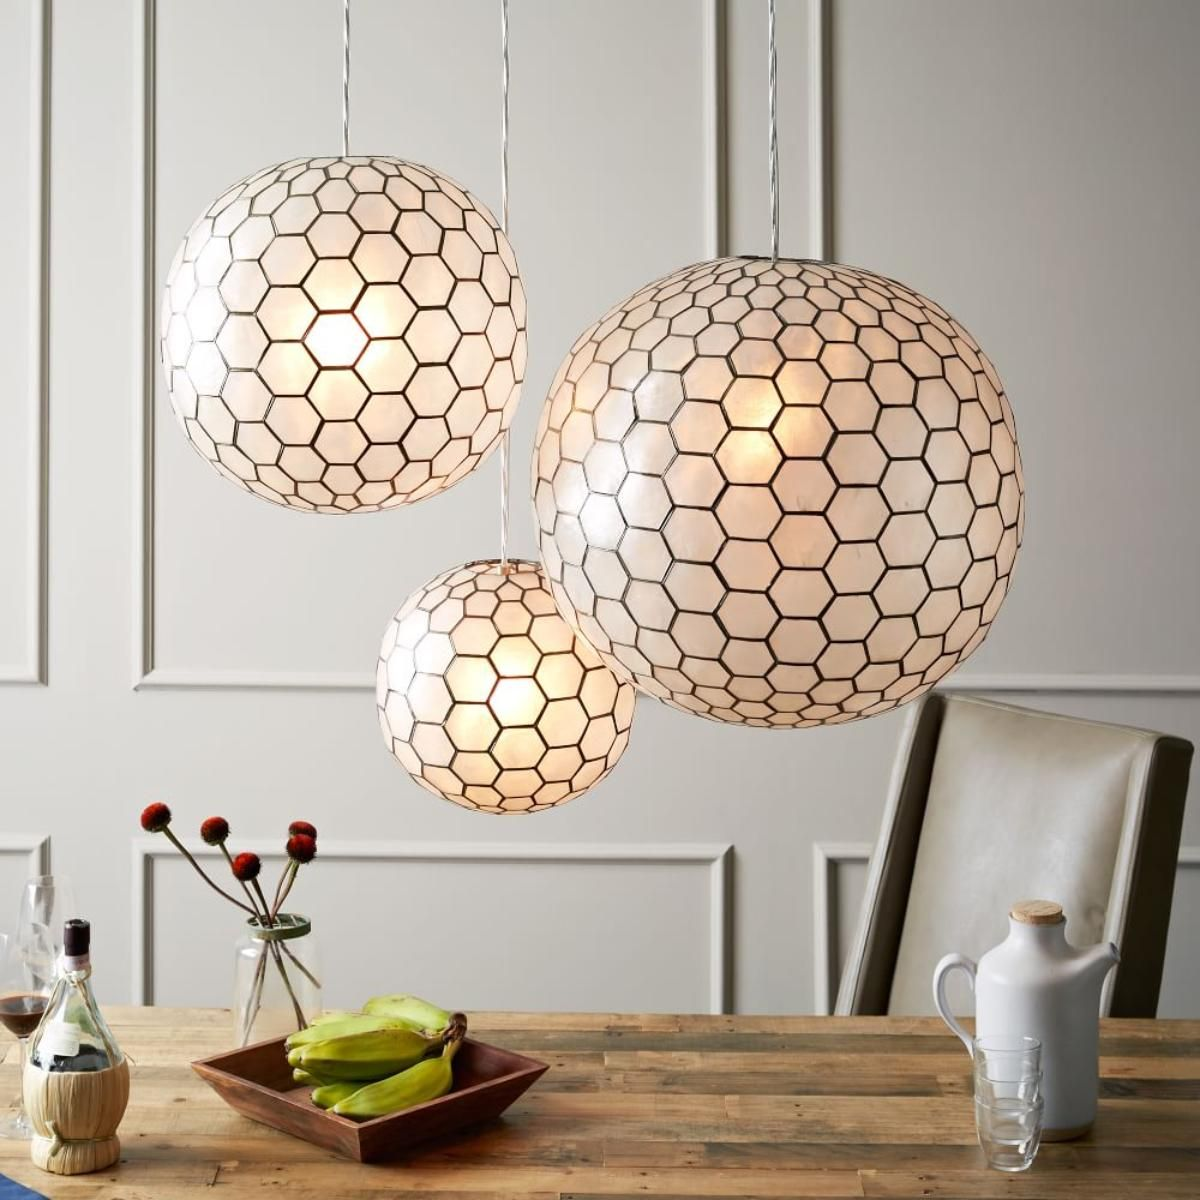 Handcrafted in the philippines the capiz shells on the capiz orb ceiling lamps are individually hand cut and set within a pewter frame the result